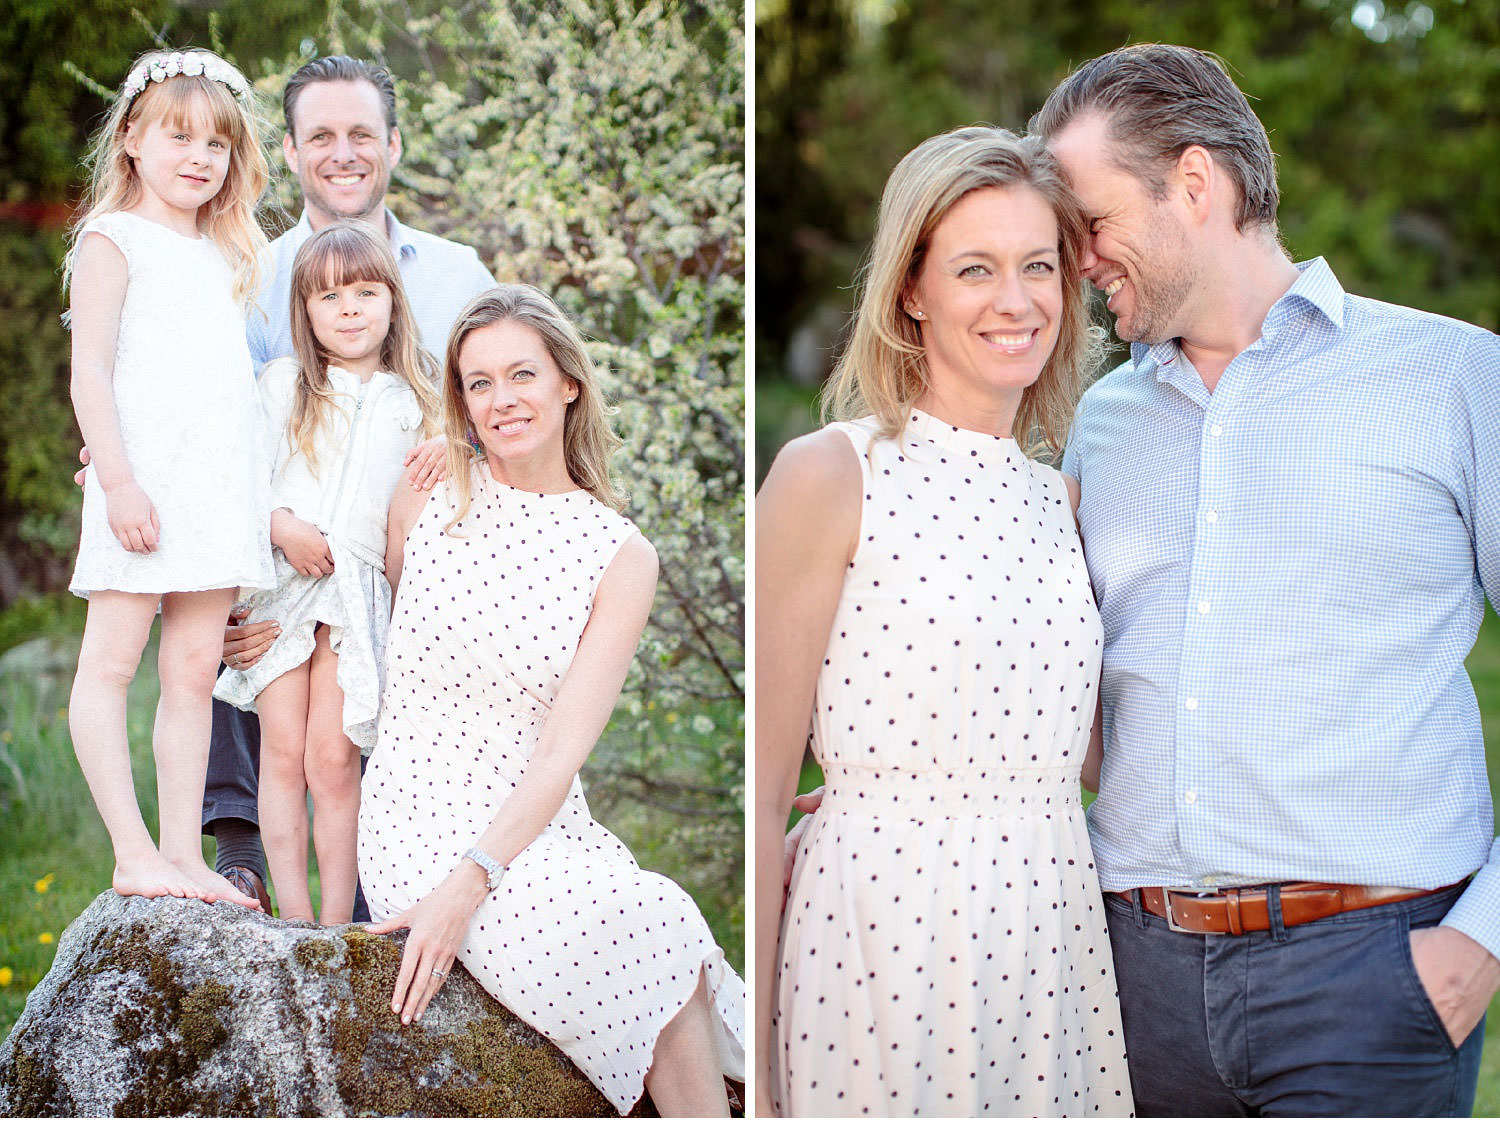 knivtsa stockholm familjefotografering lifestyle portrait 28 - Love & Happiness portrait, family-session